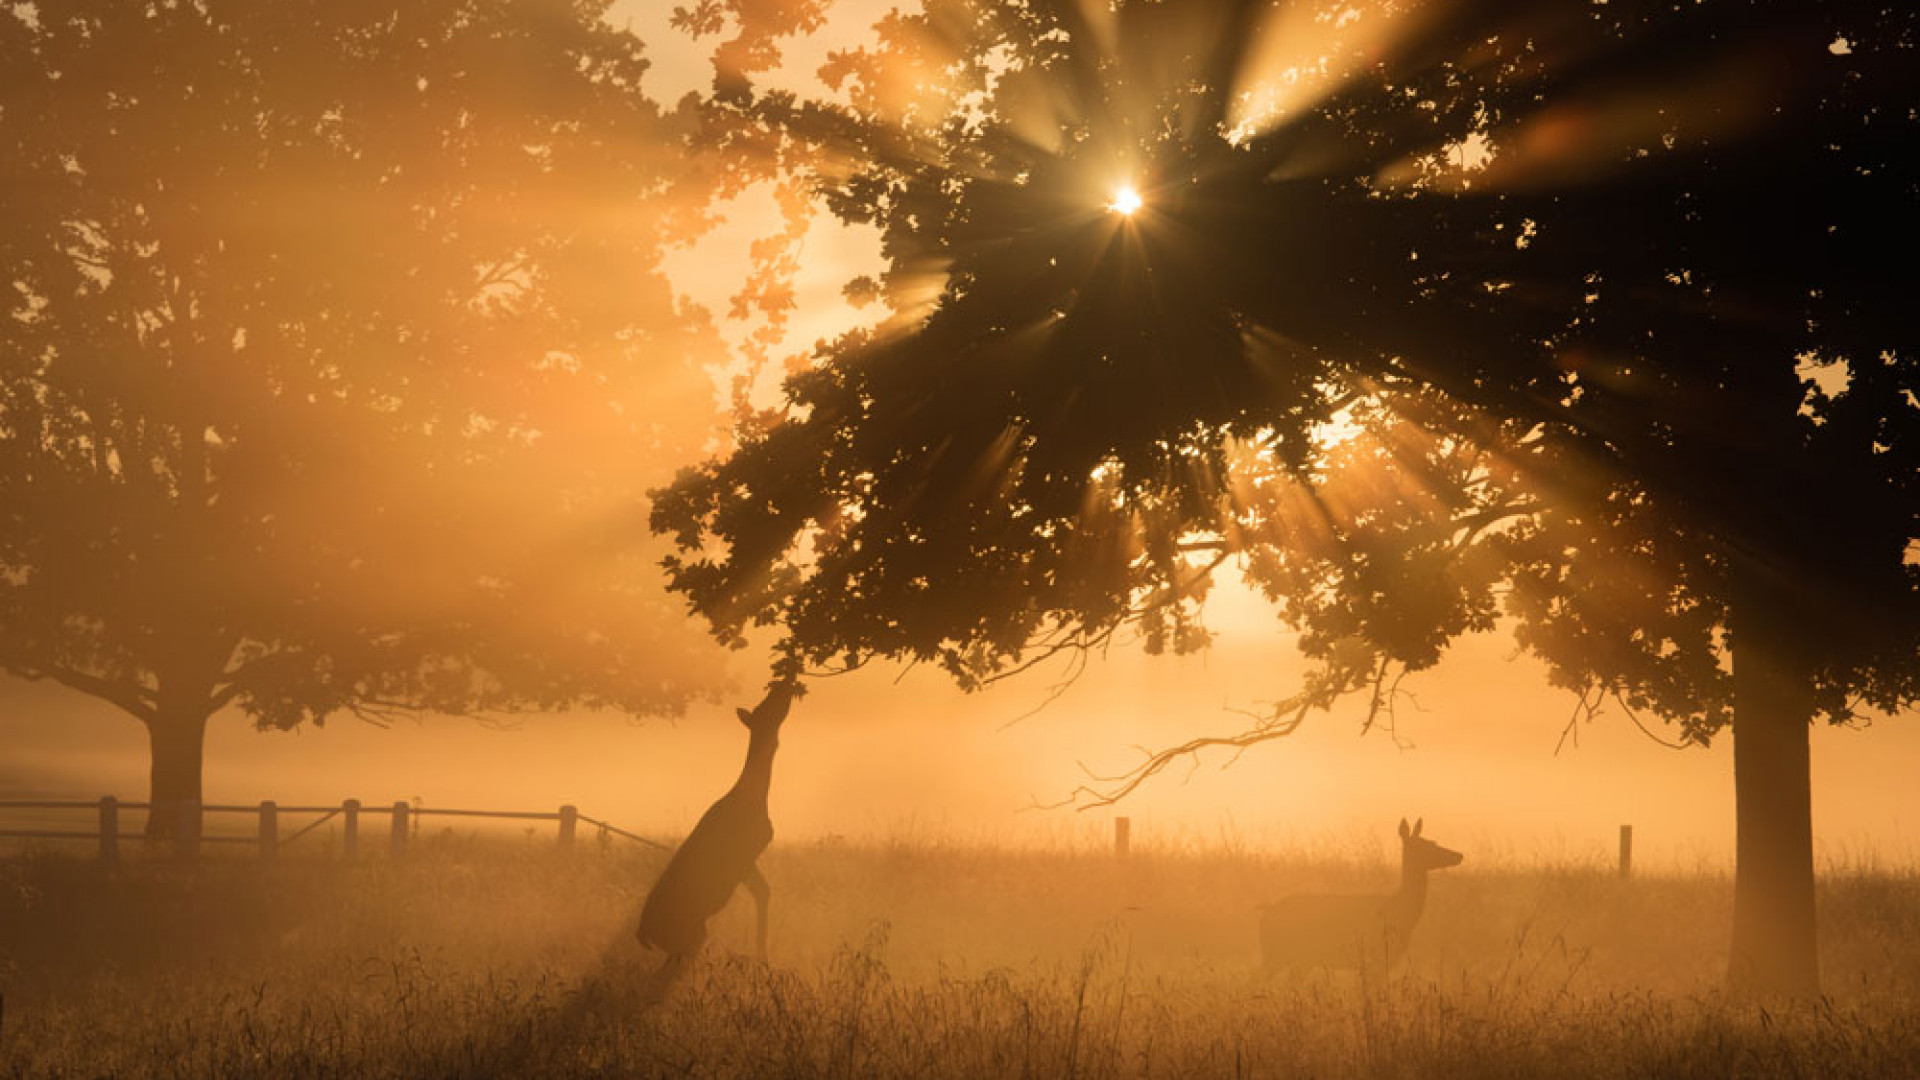 Deer in the early morning sun in Richmond Park, west London